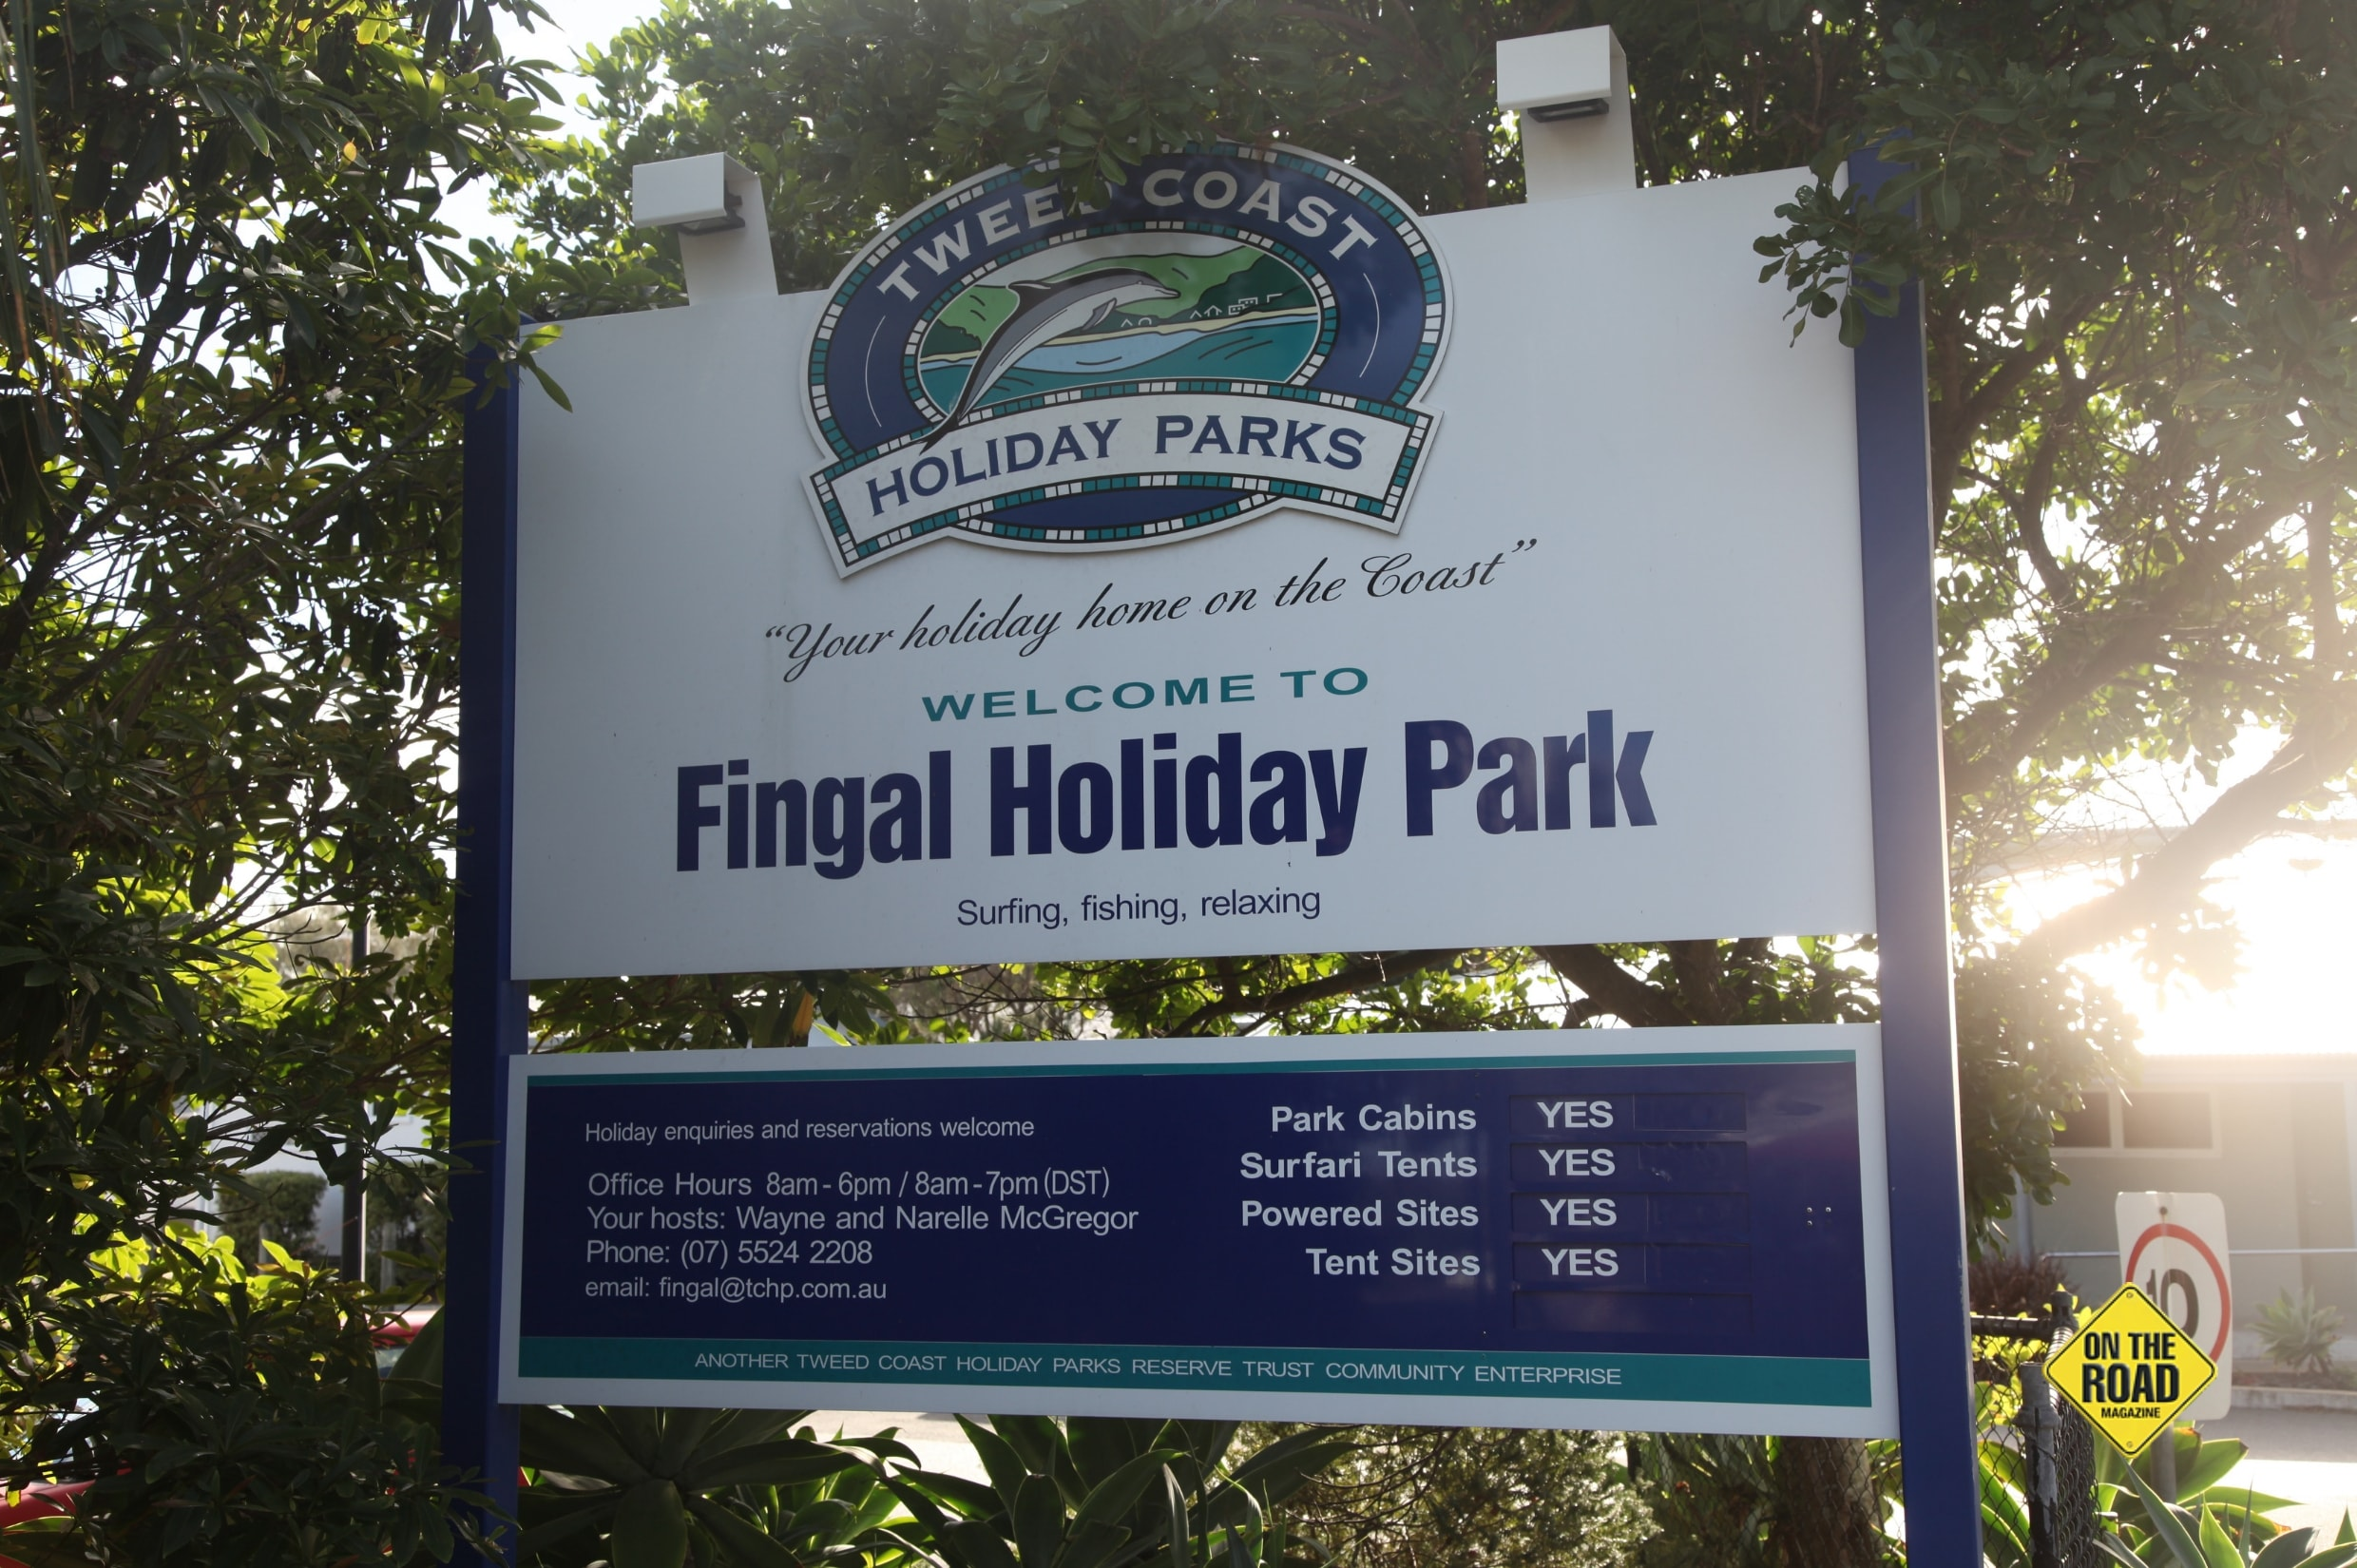 Fingal Holiday Park